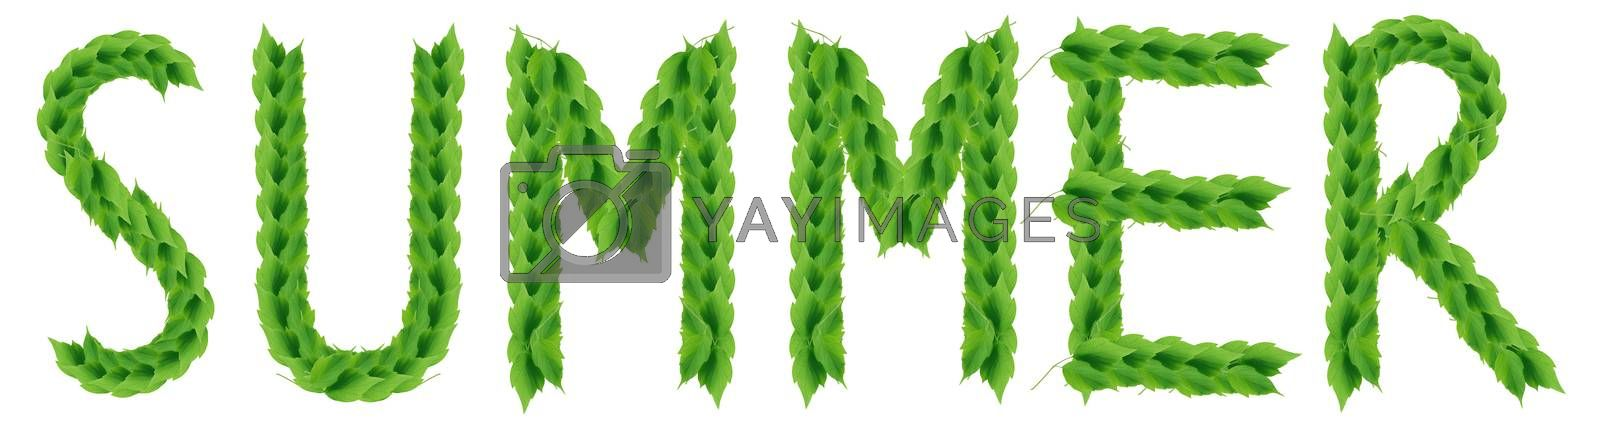 Word SUMMER made from green leaves on white background